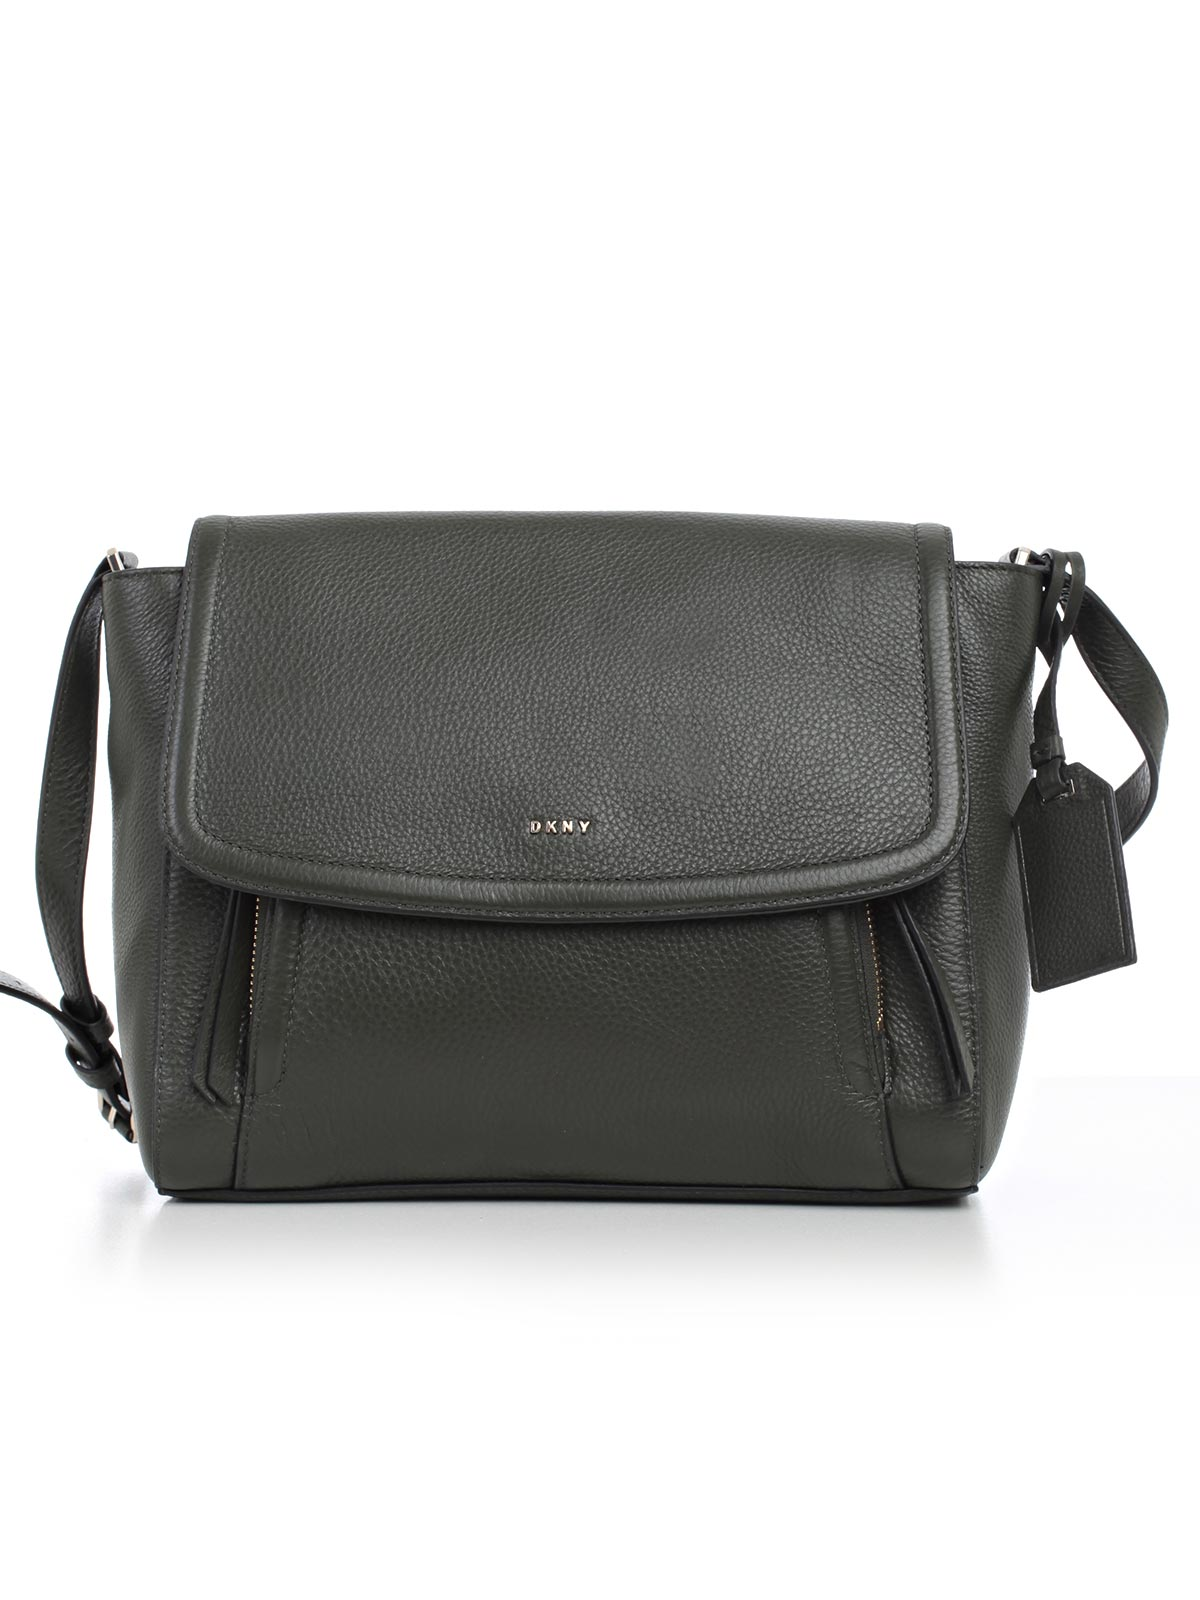 Picture of Dkny Totes